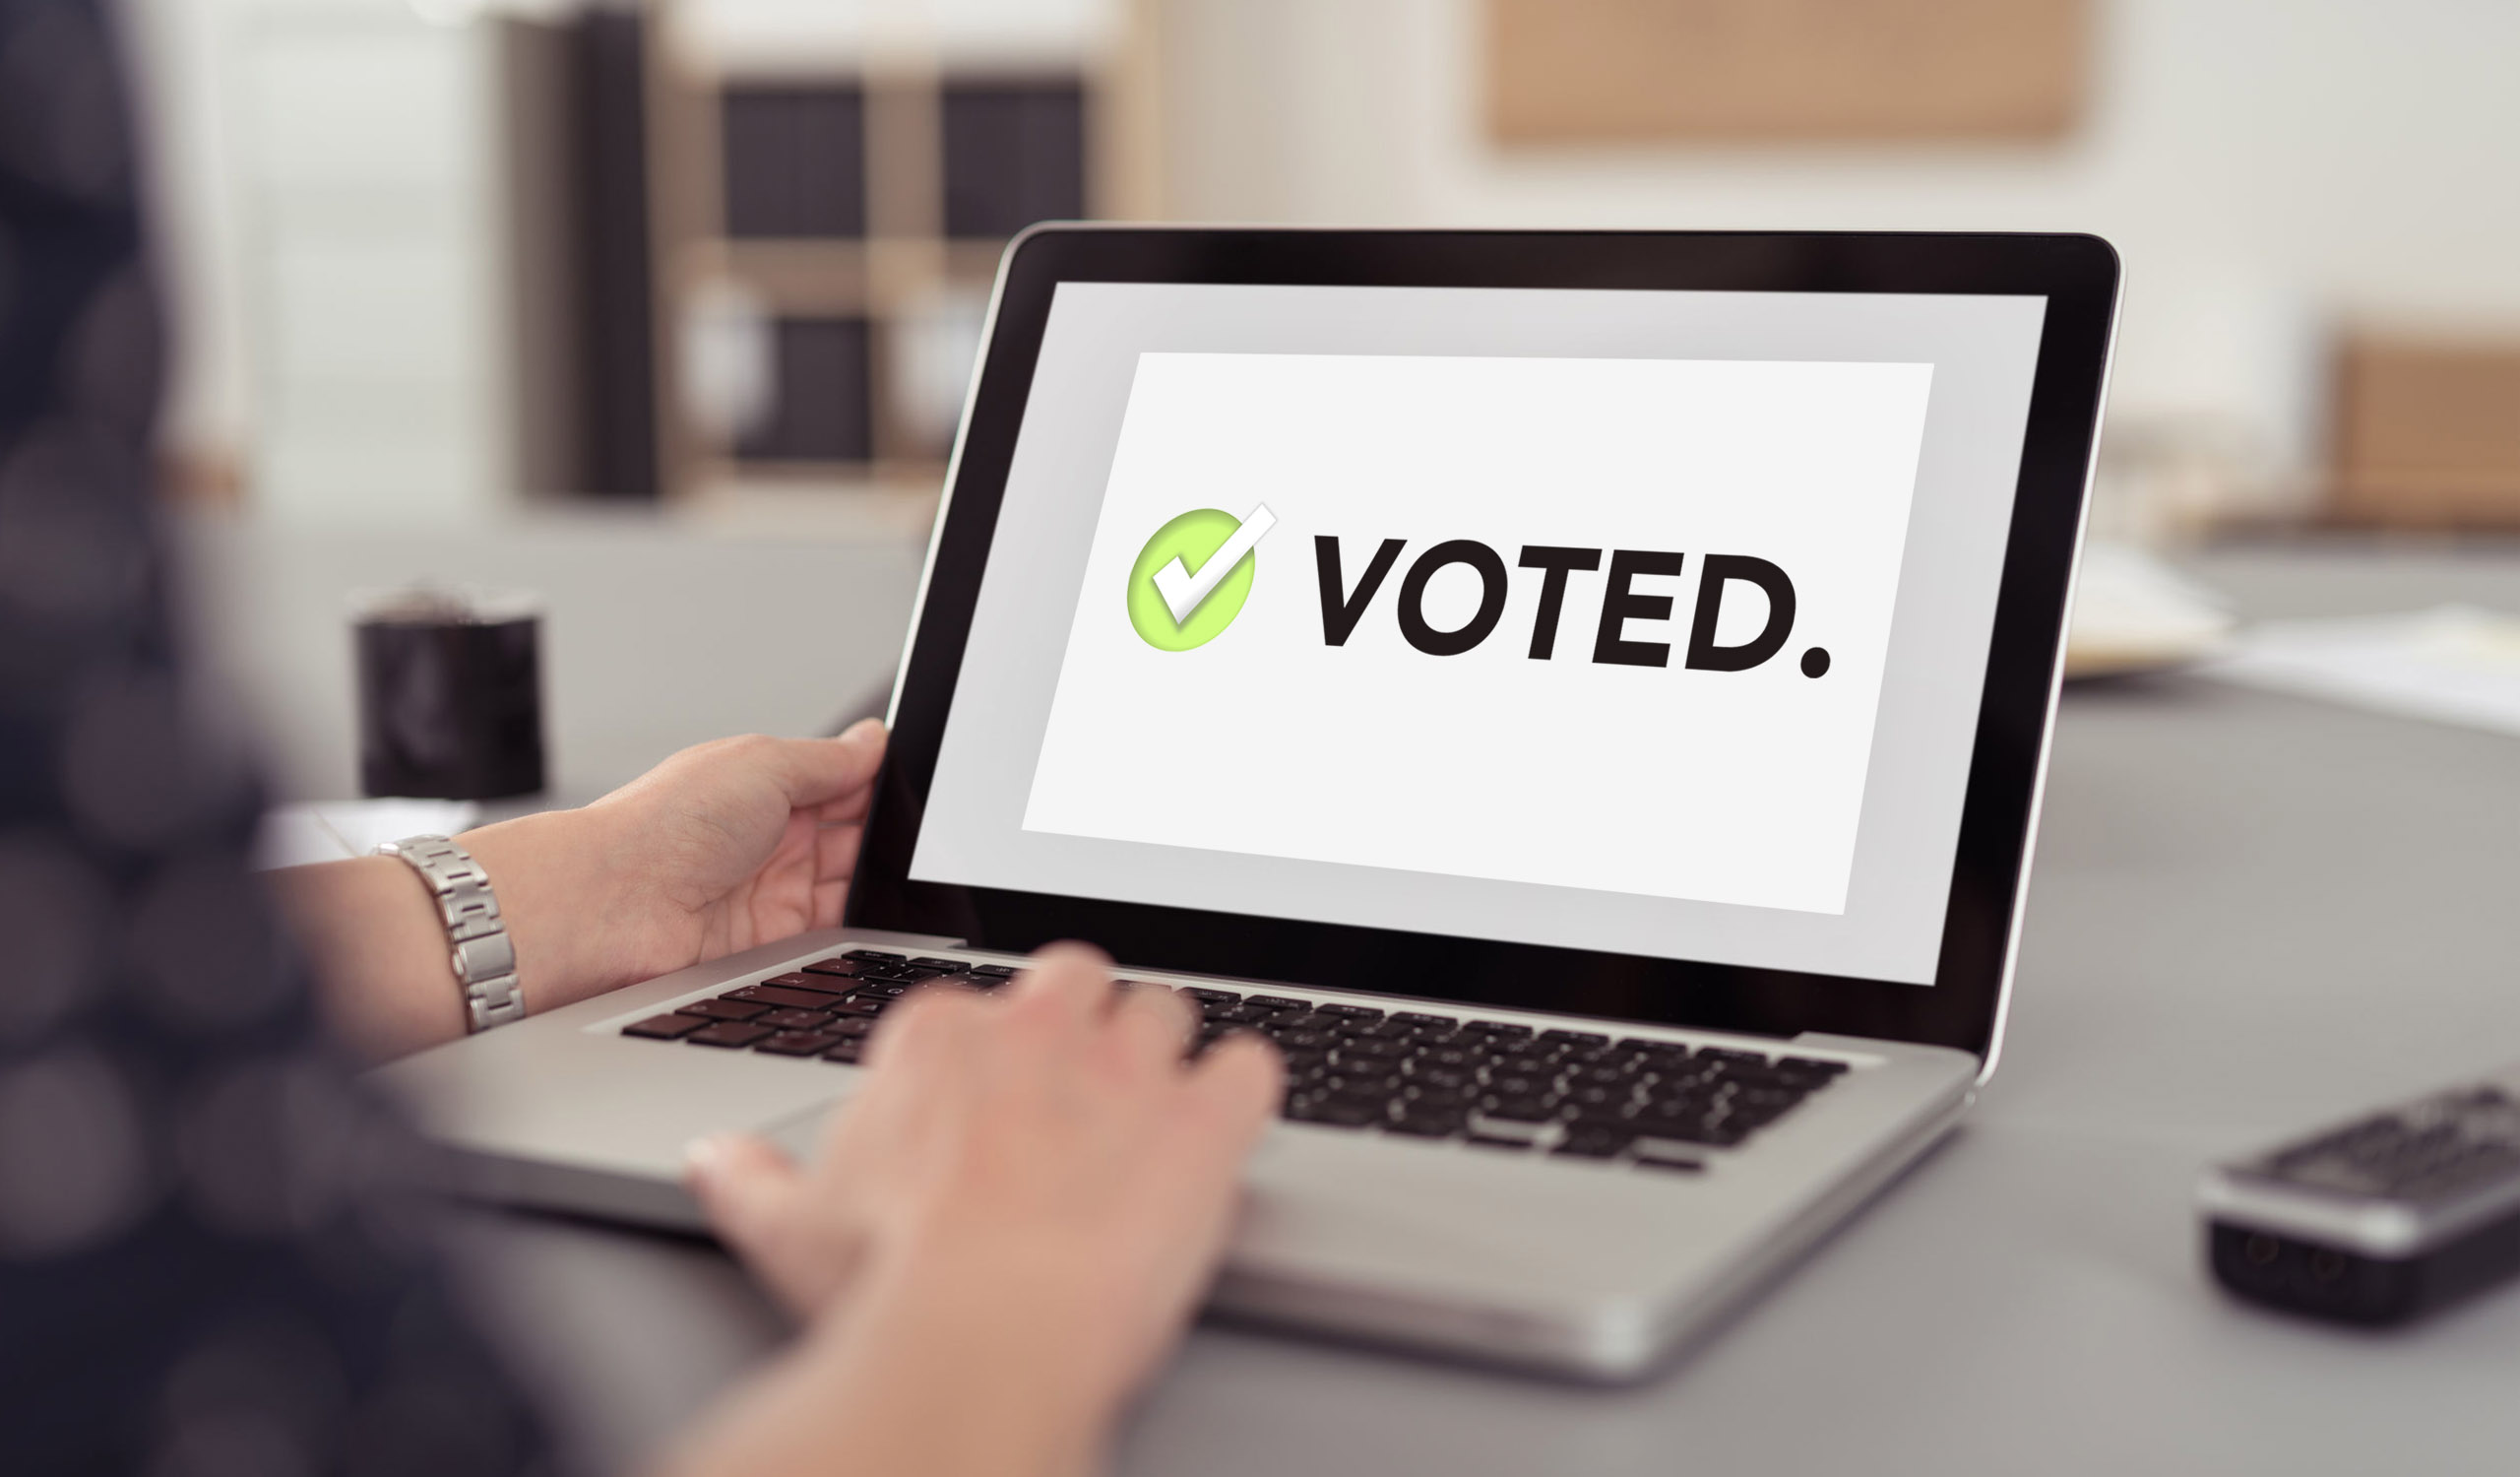 Top Features Every Online Voting System Should Have